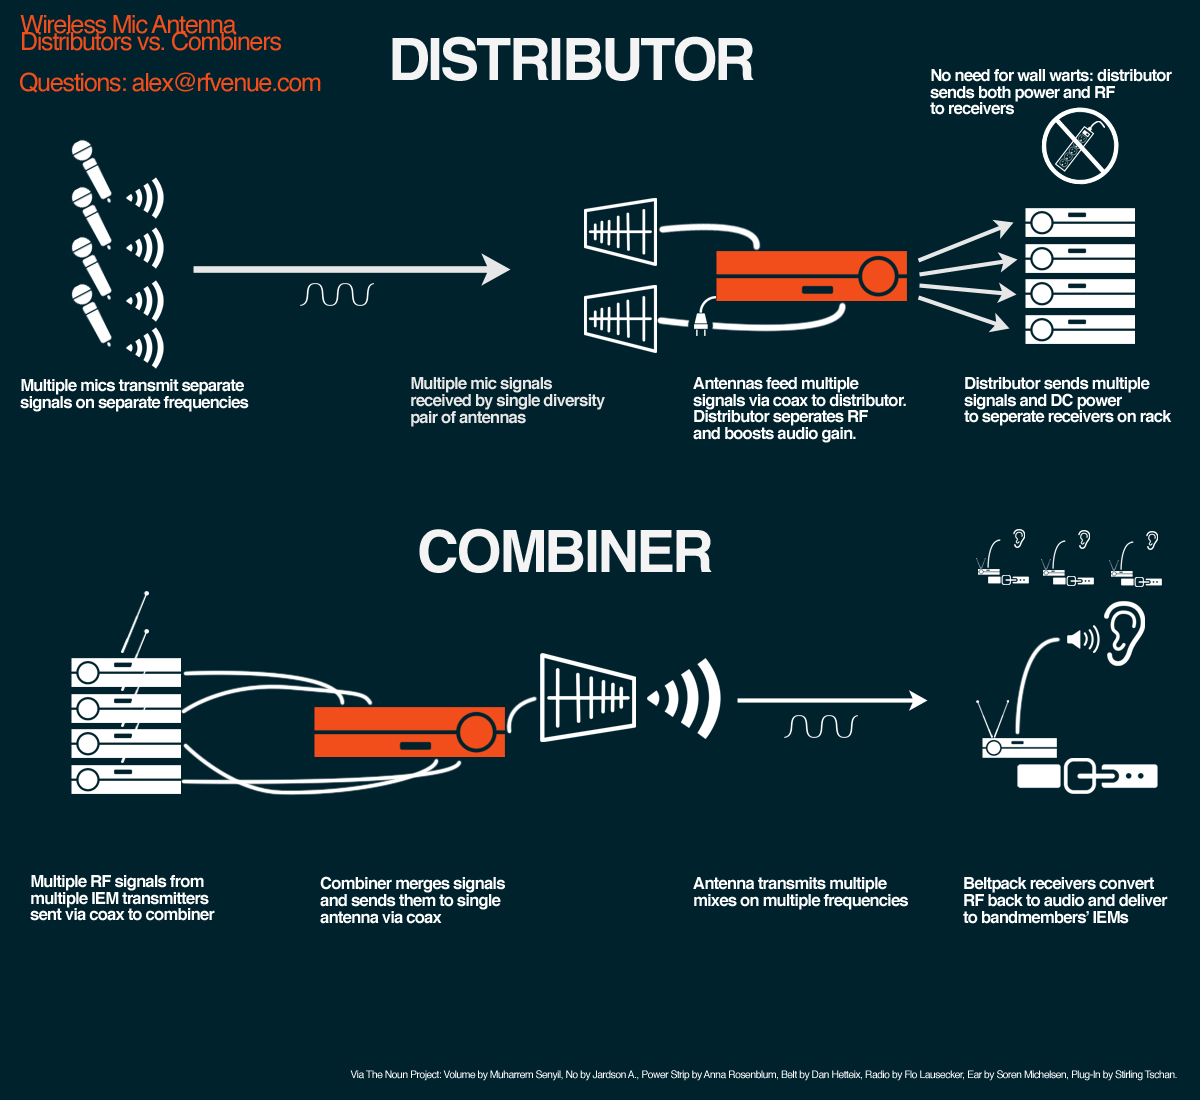 Wireless microphone antenna distribution and combination infographic